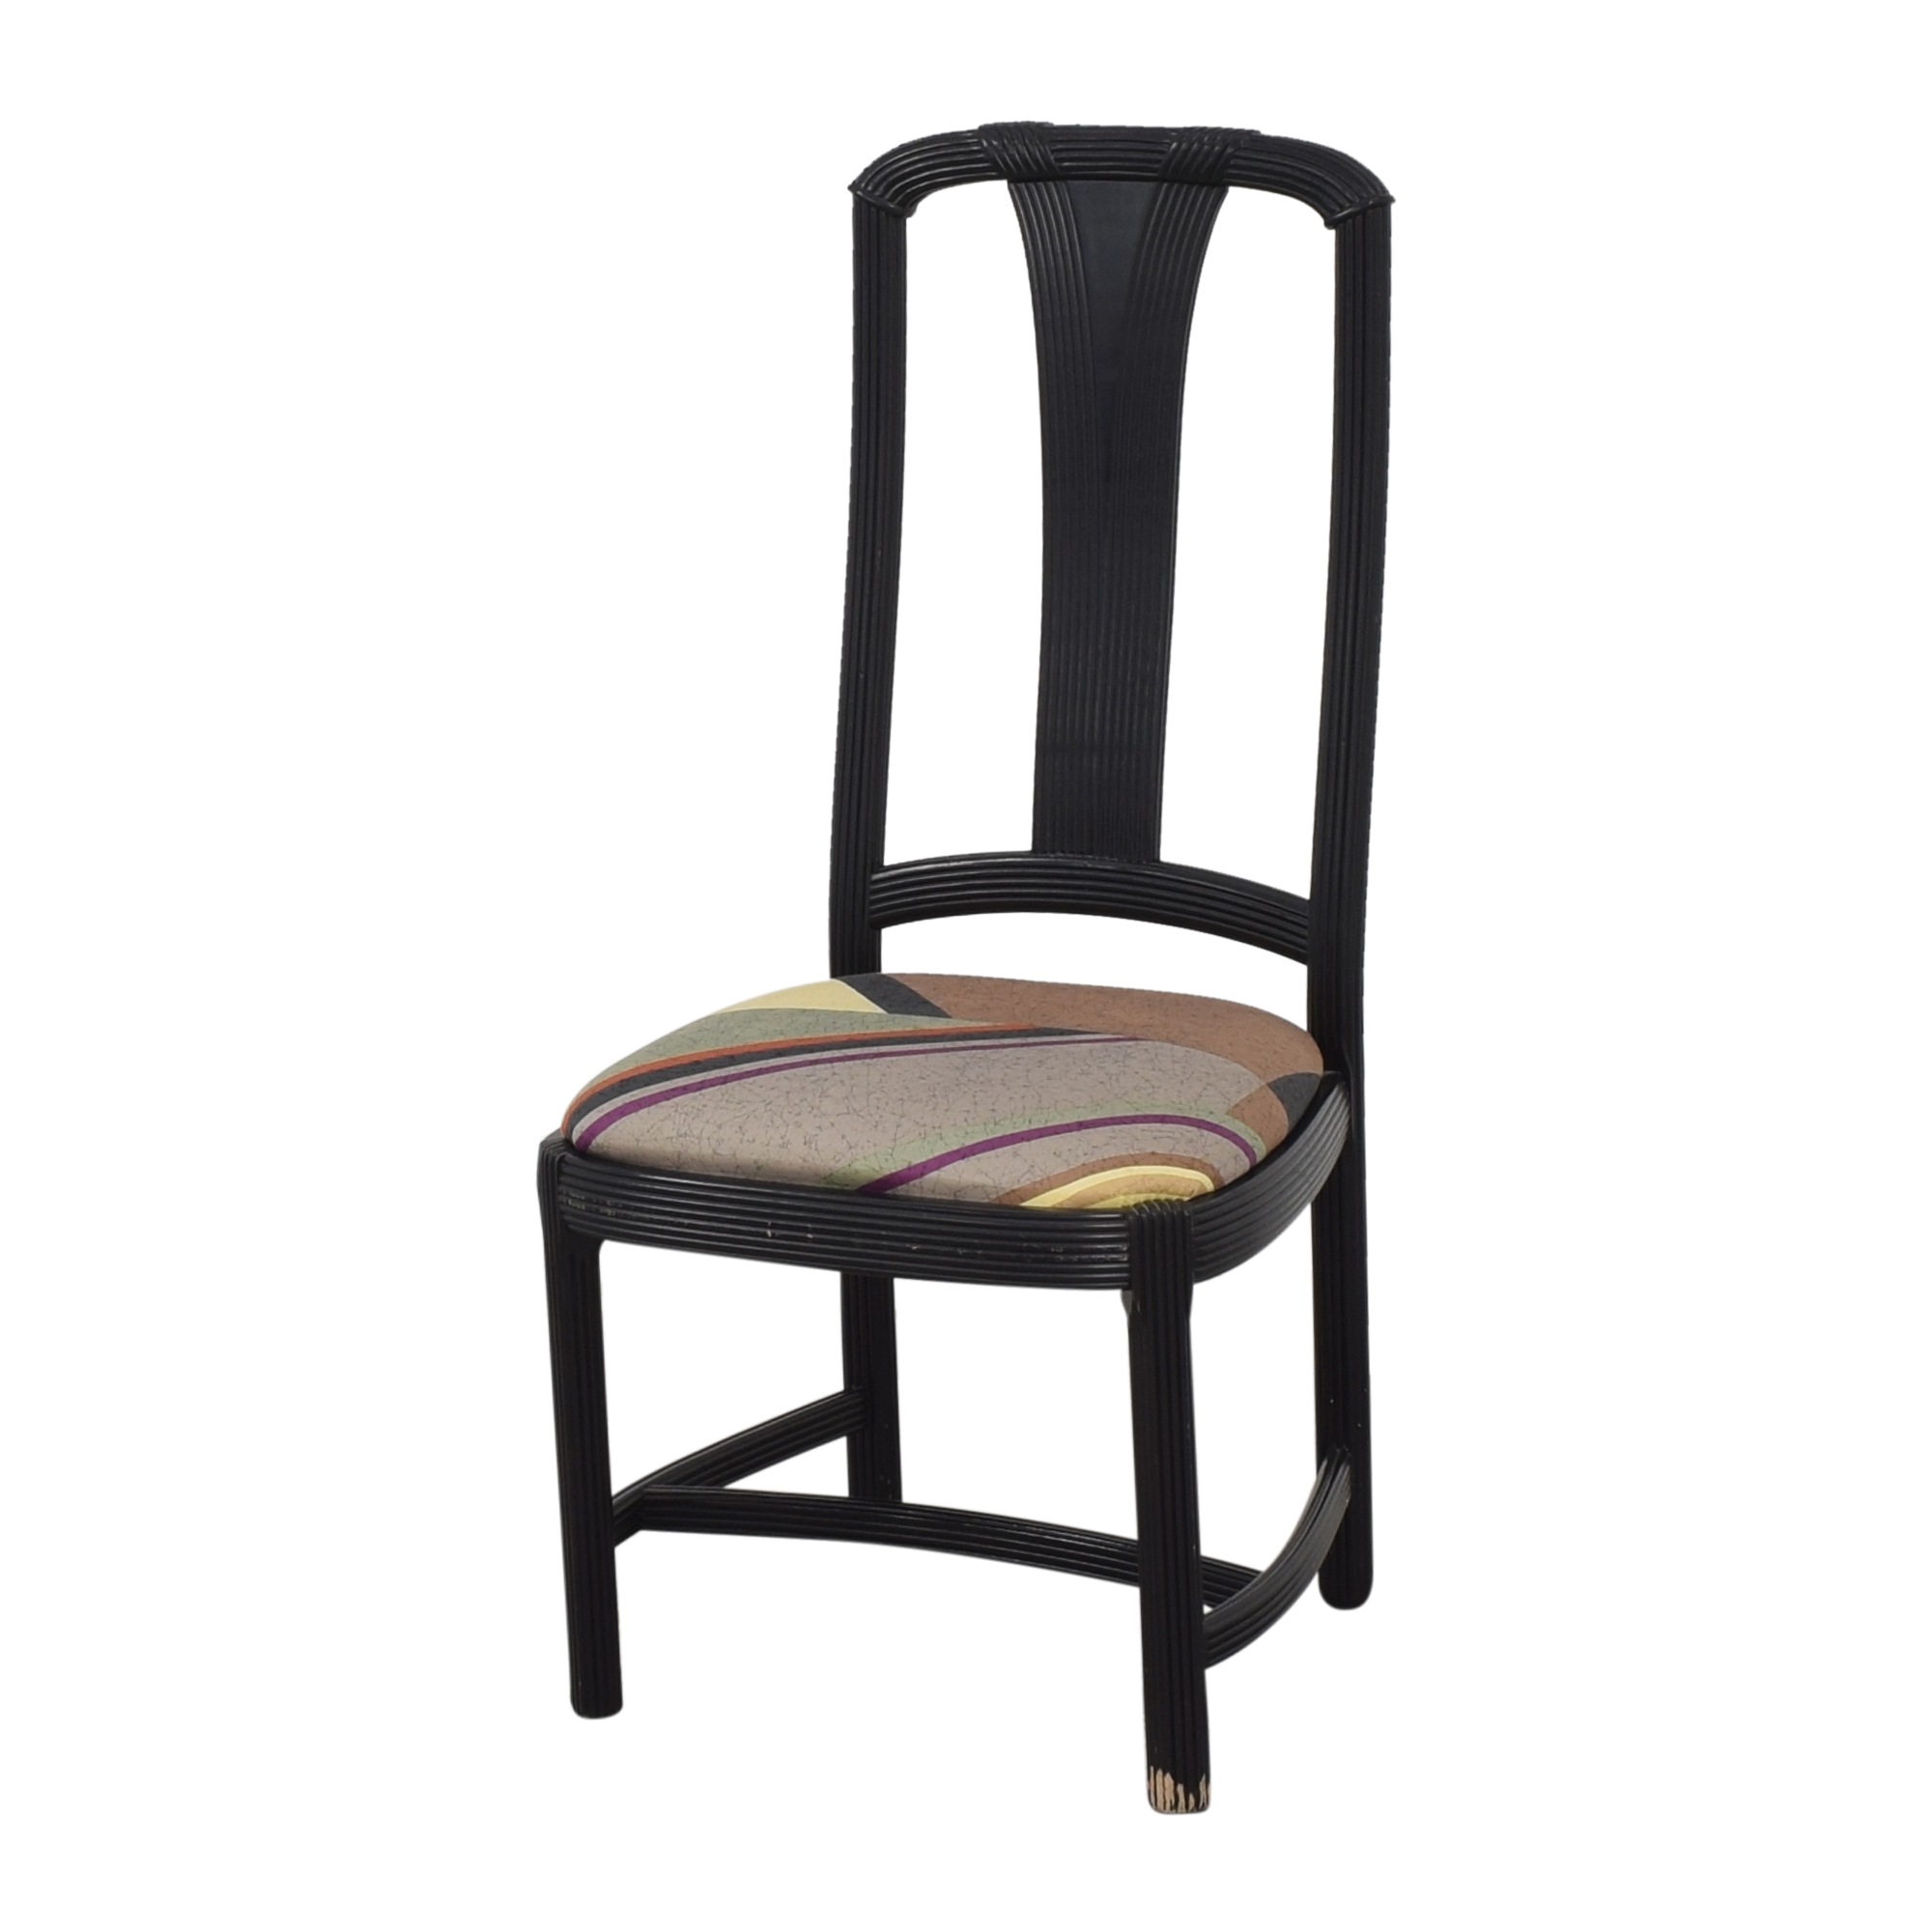 Custom Upholstered Dining Chairs coupon